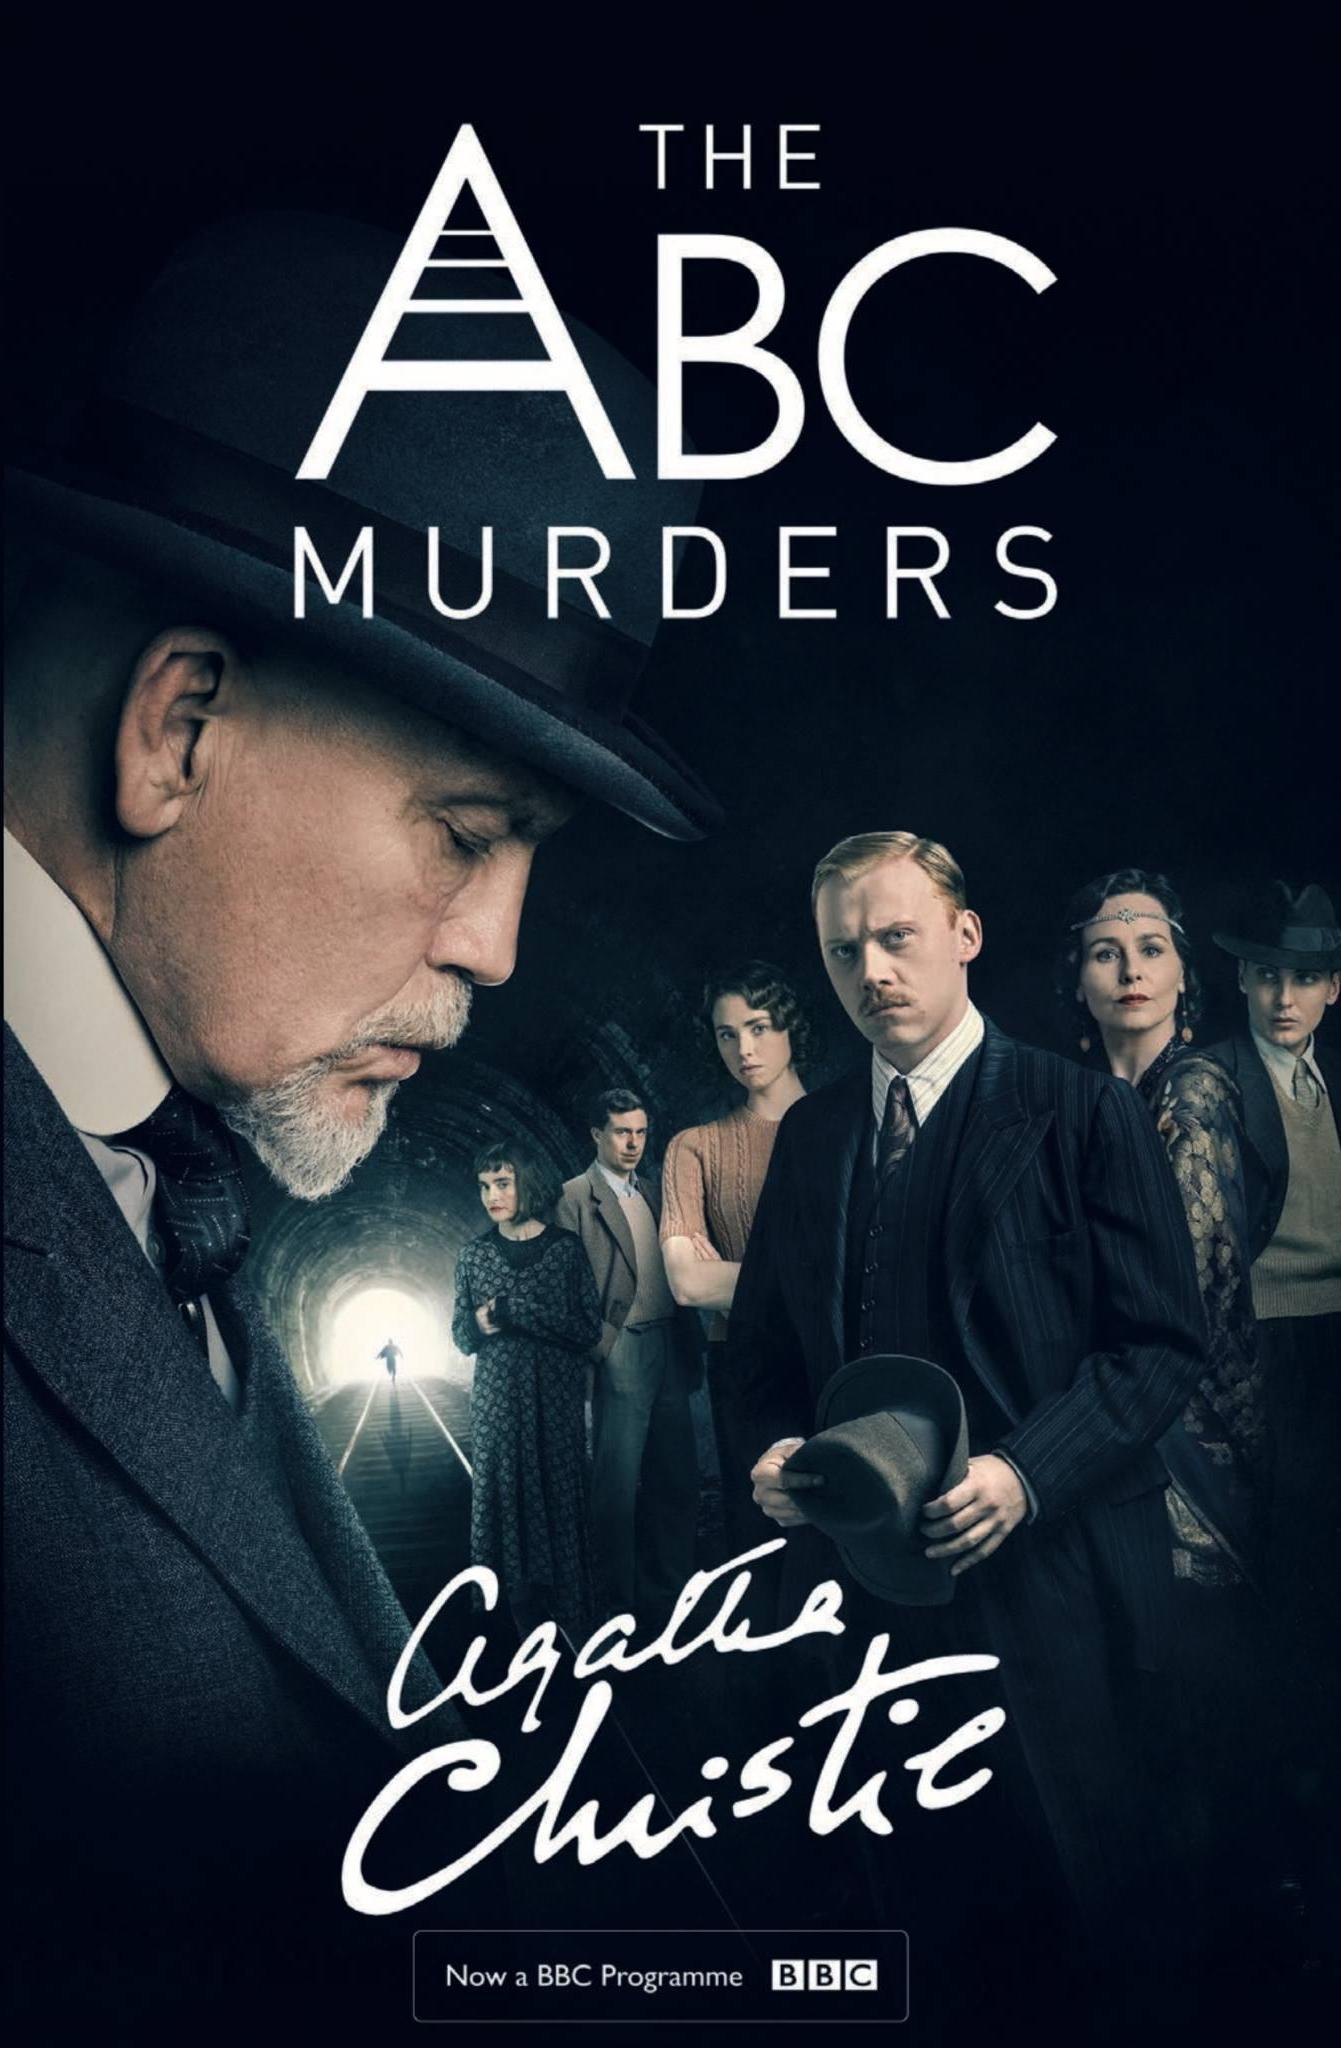 The ABC Murders S01 E01 Cut